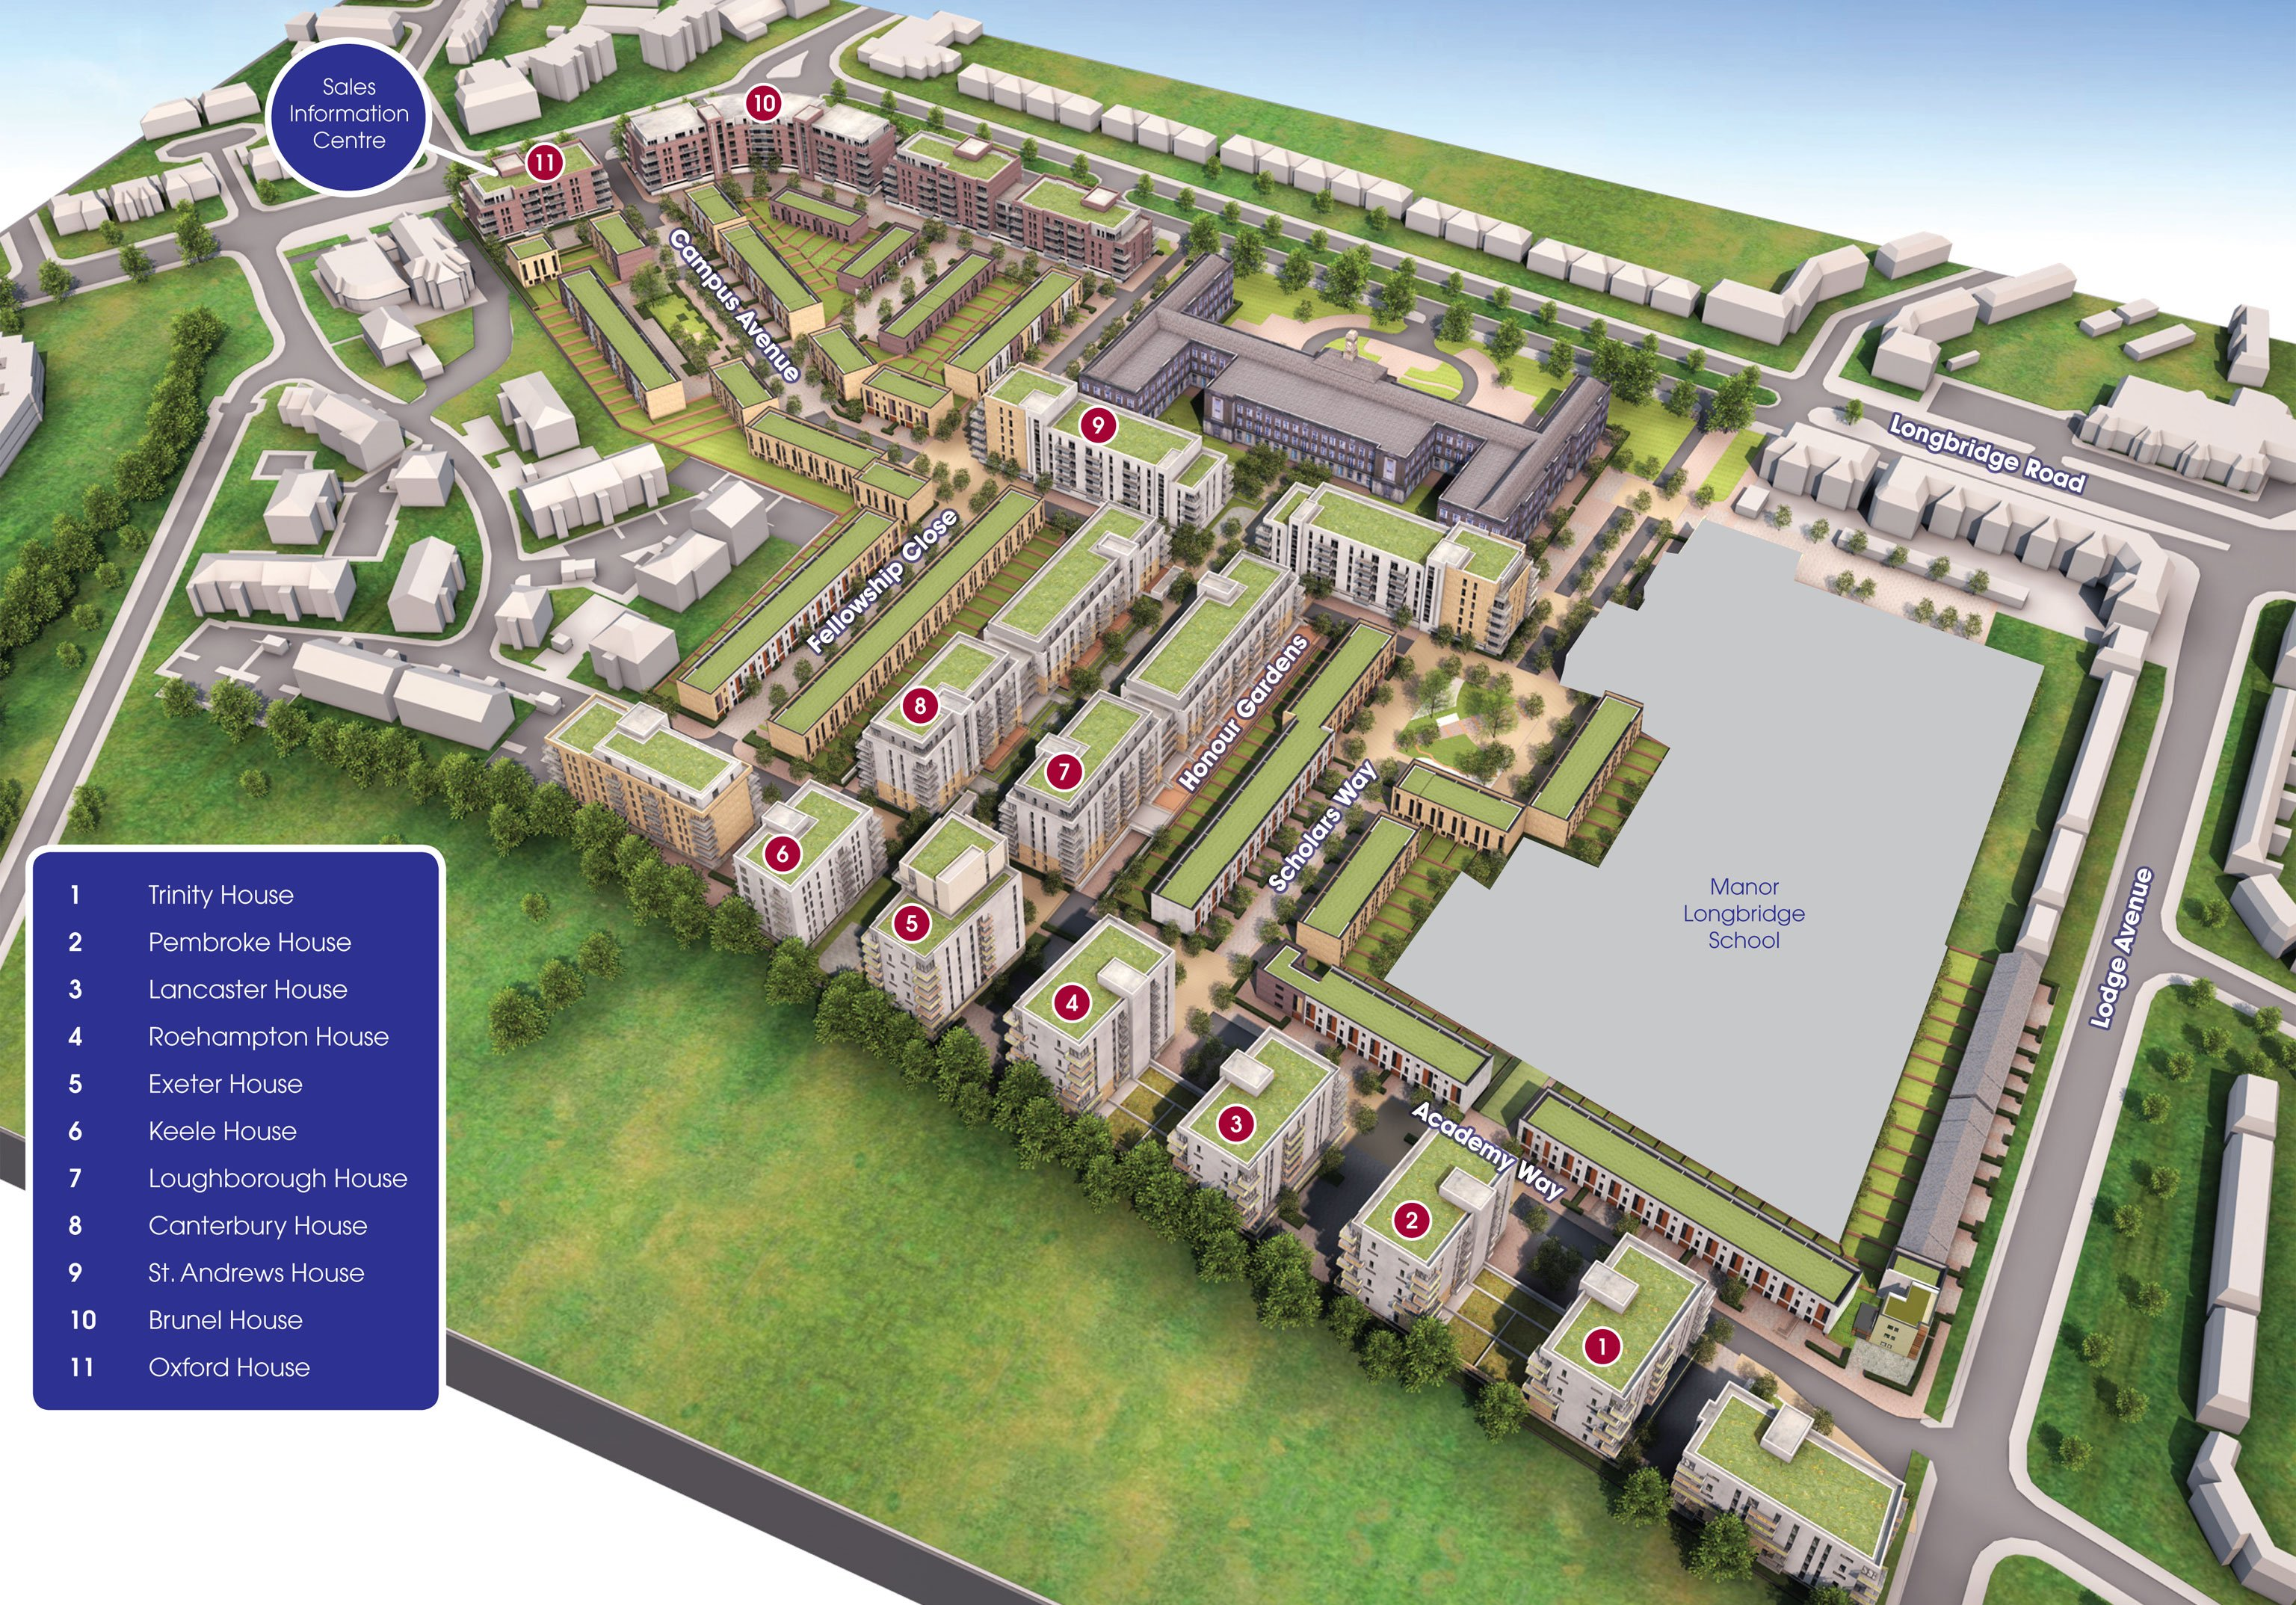 Academy Central site plan